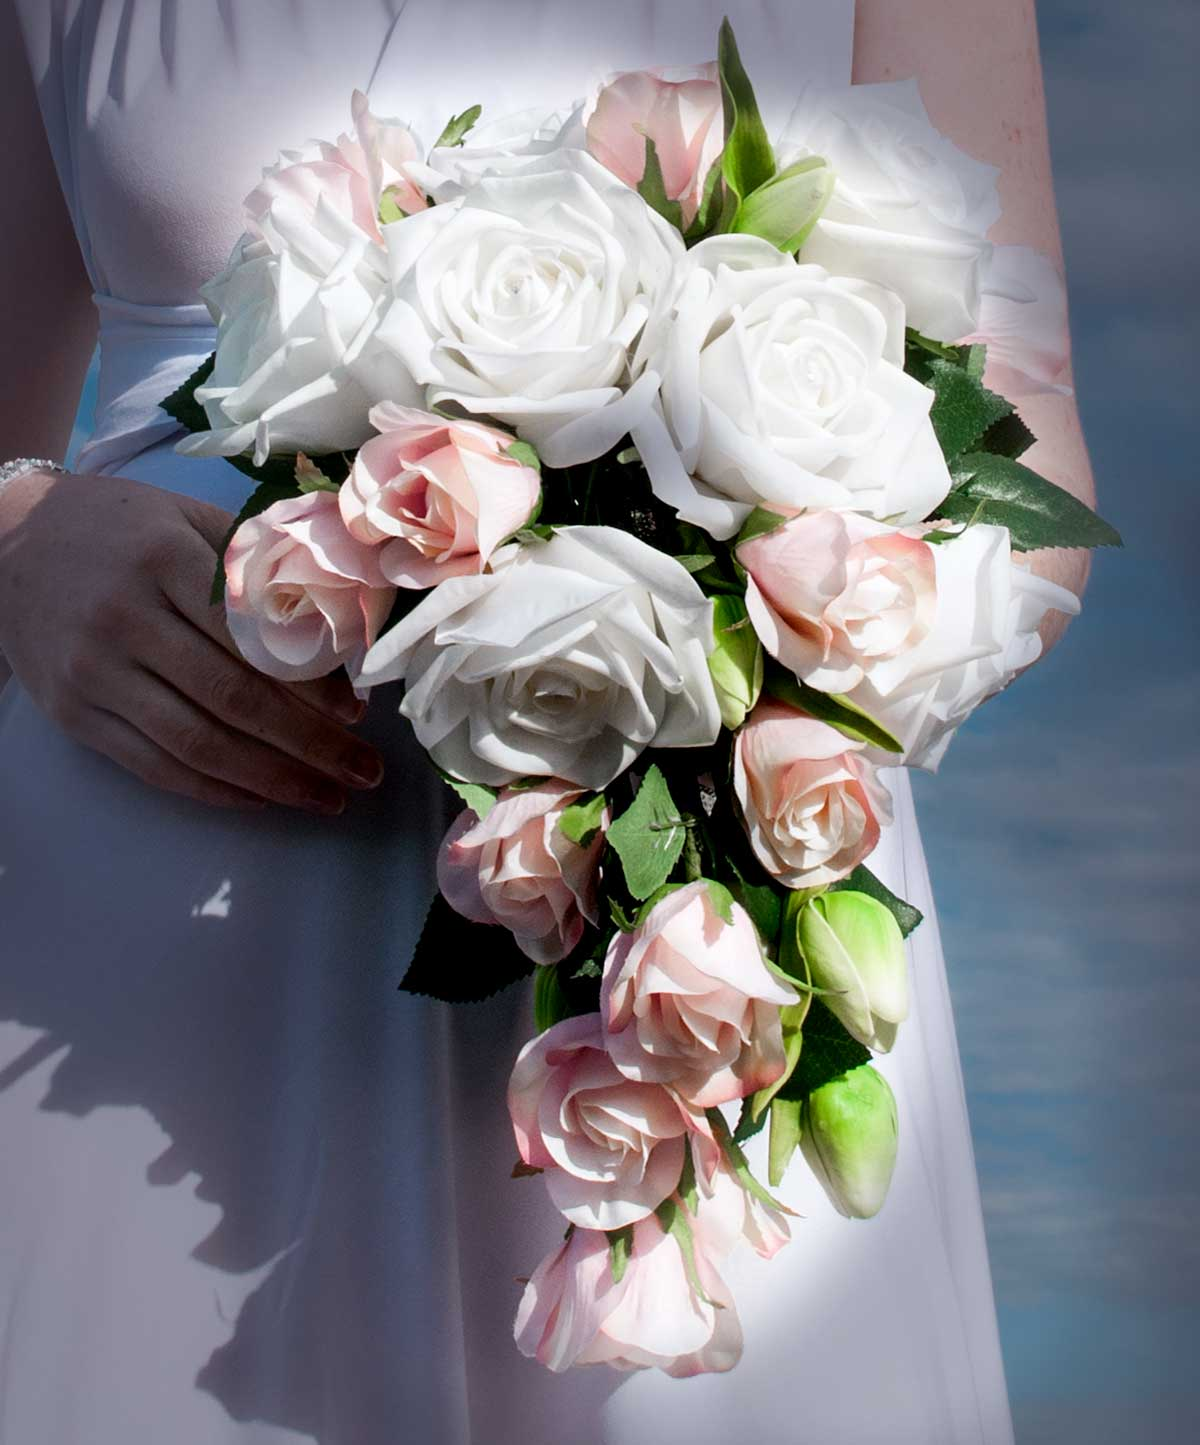 Laura Cascading Bouquet, wedding, pink and rose, buds, artificial flowers